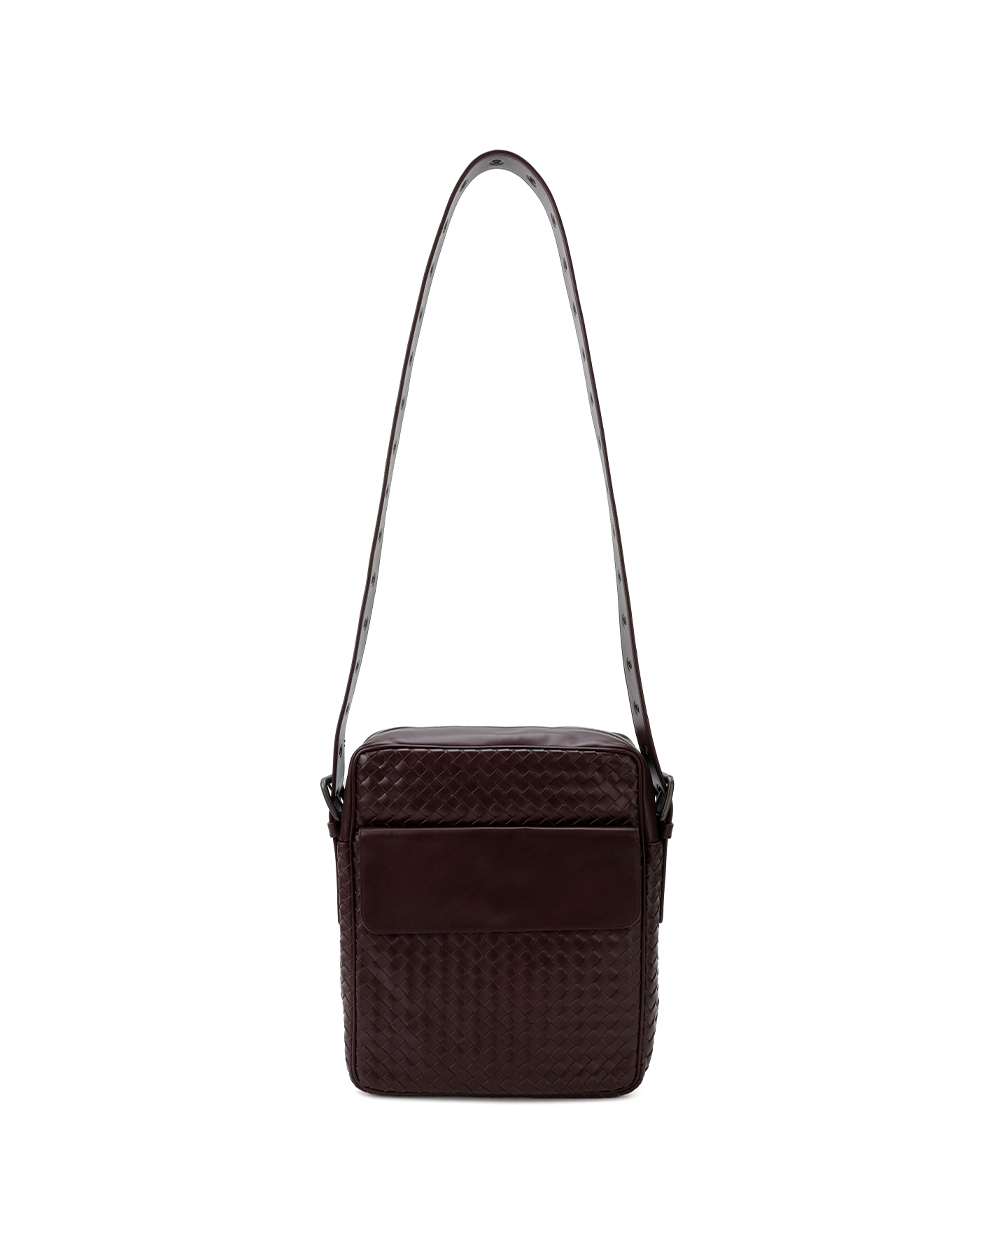 Woven Leather Cross-body Bag 1